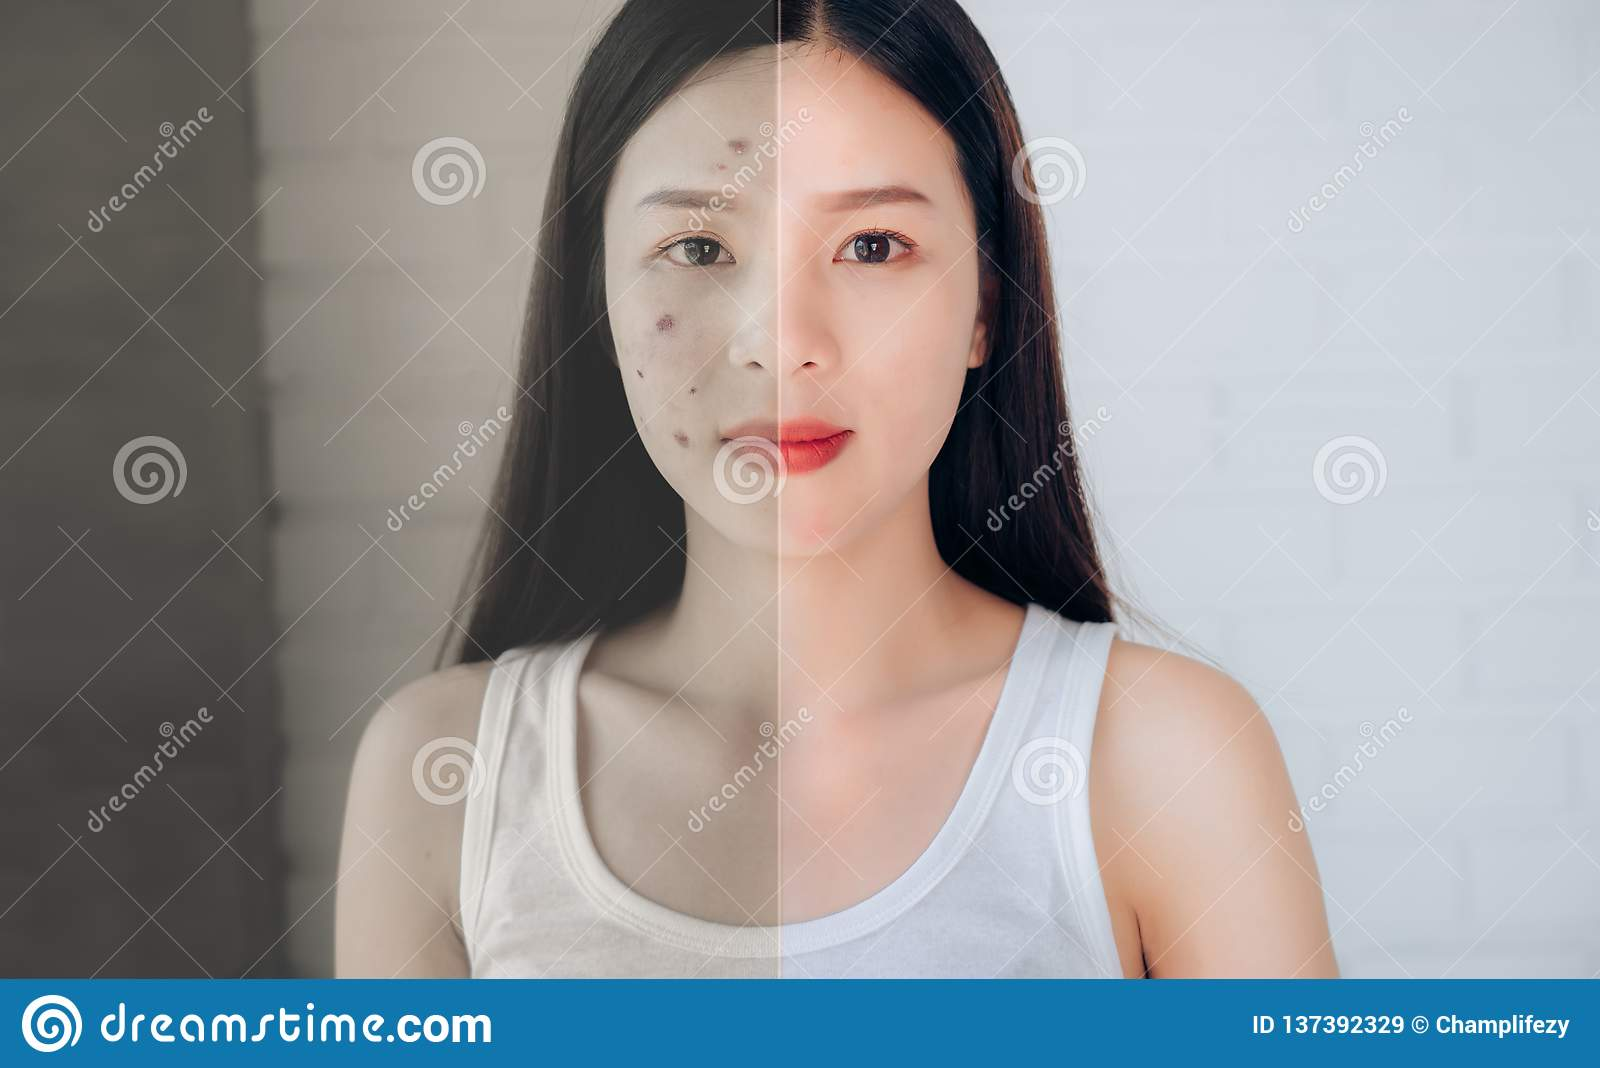 Comparison of Asian Woman Acne Face and After Clean Face